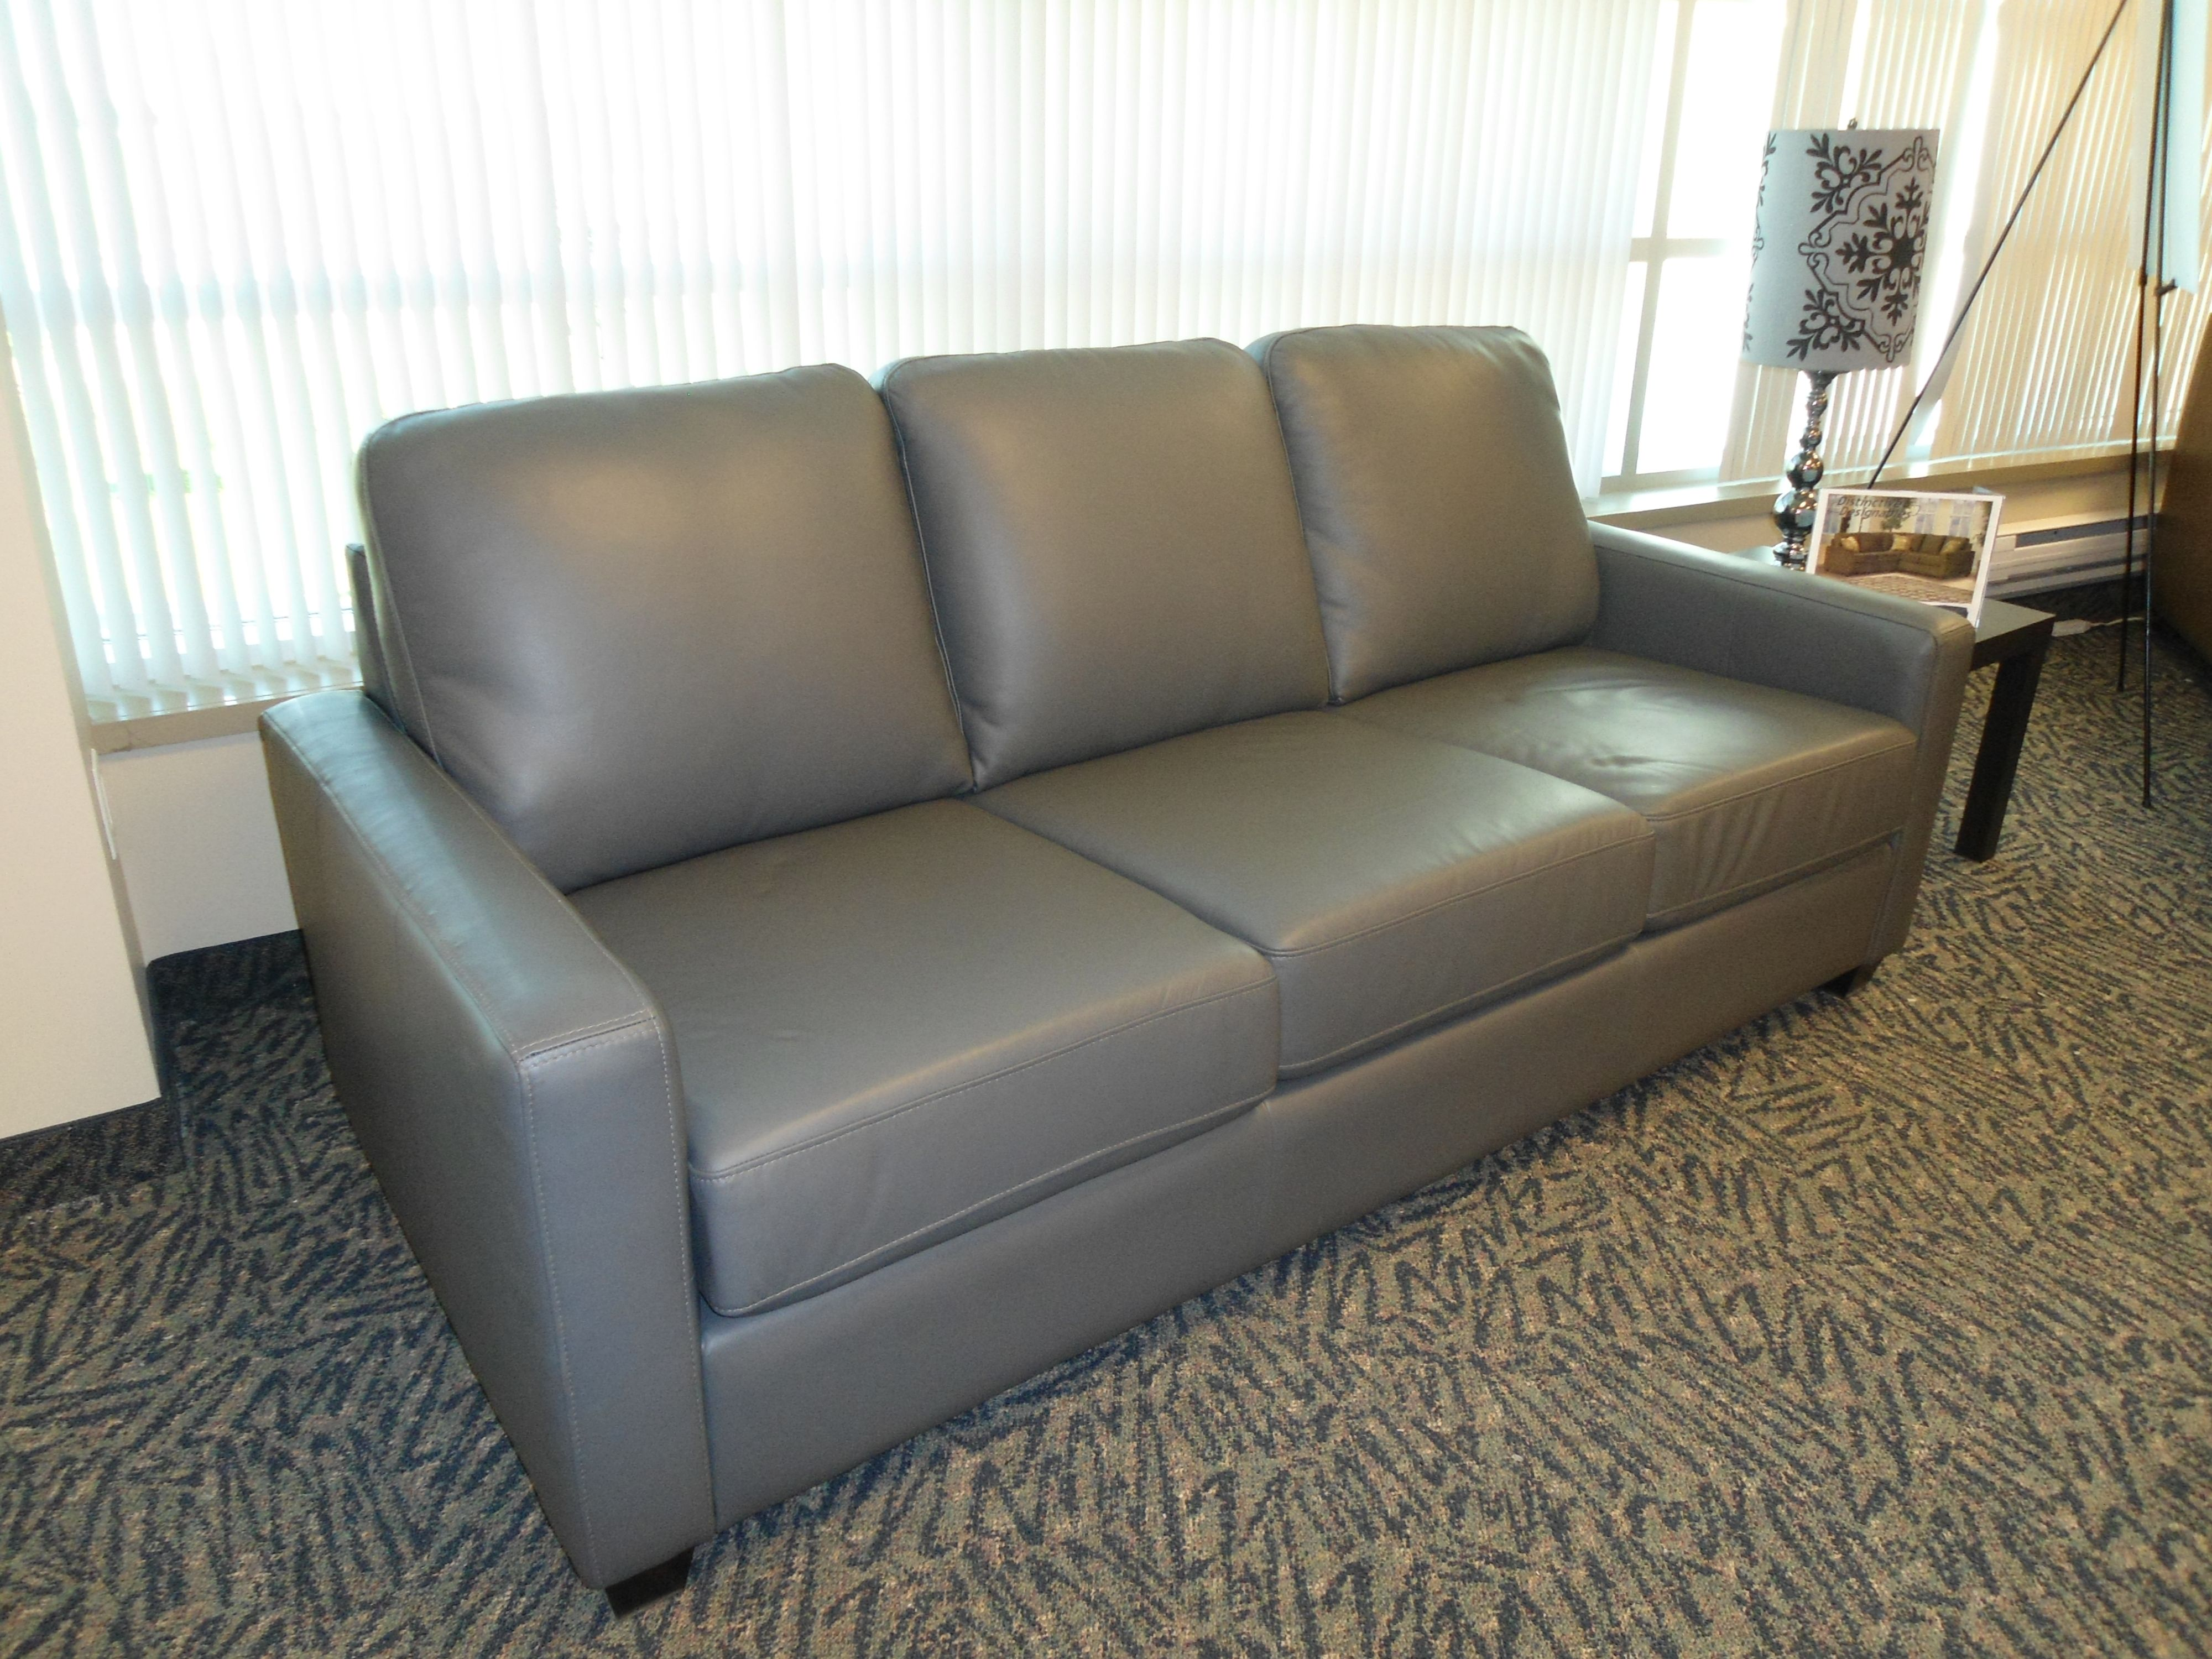 Canadian Made Sofas Toronto Condo Size Leather Sofa Made In Canada Furniture